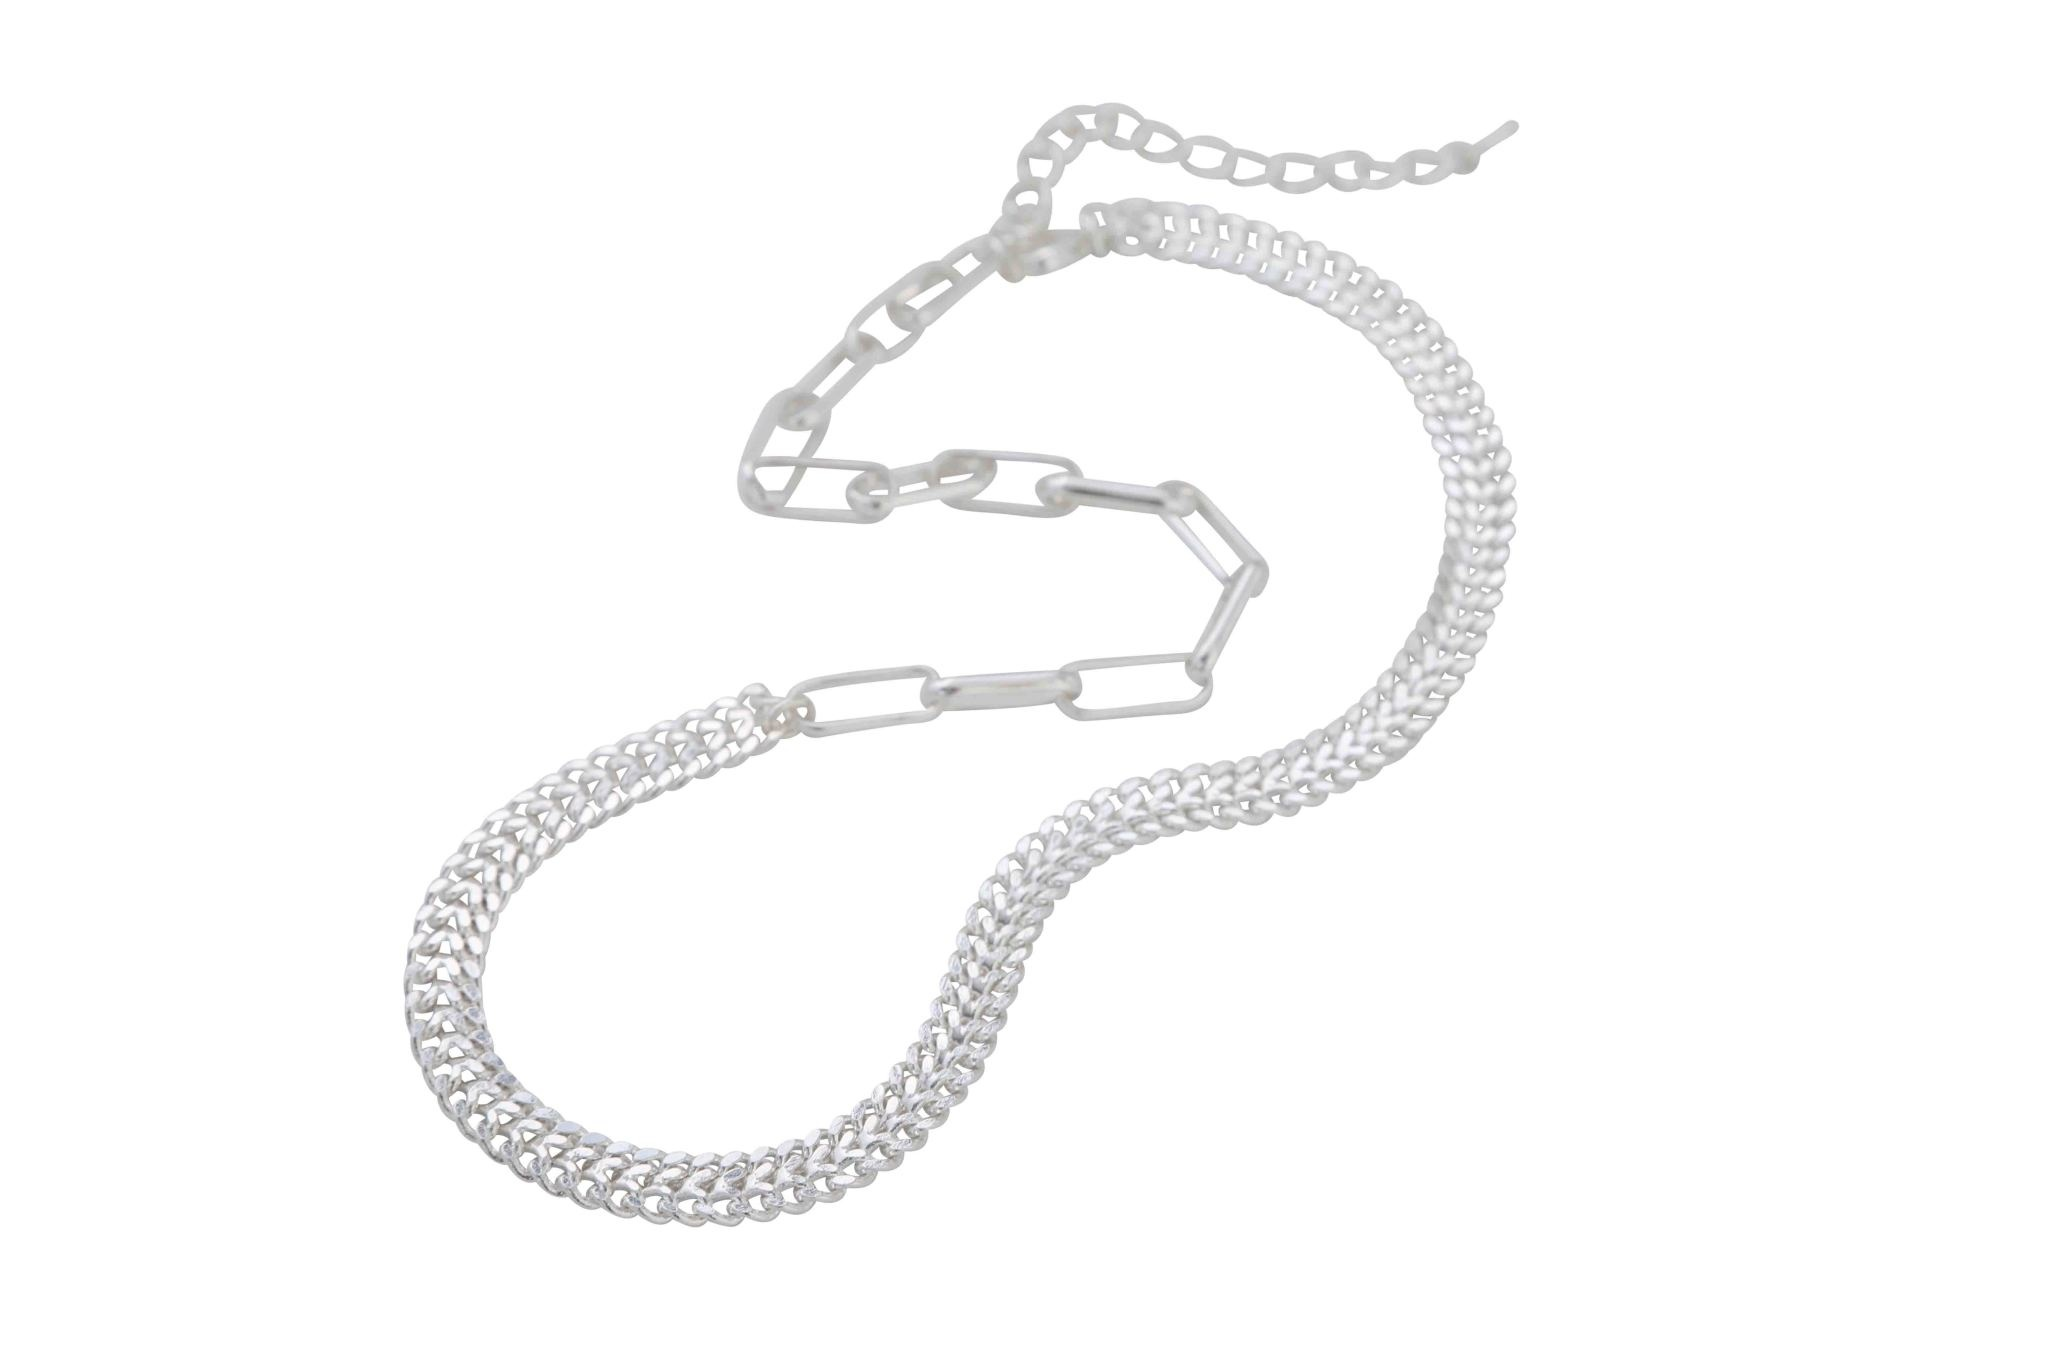 Shiny Silver Chain Necklace